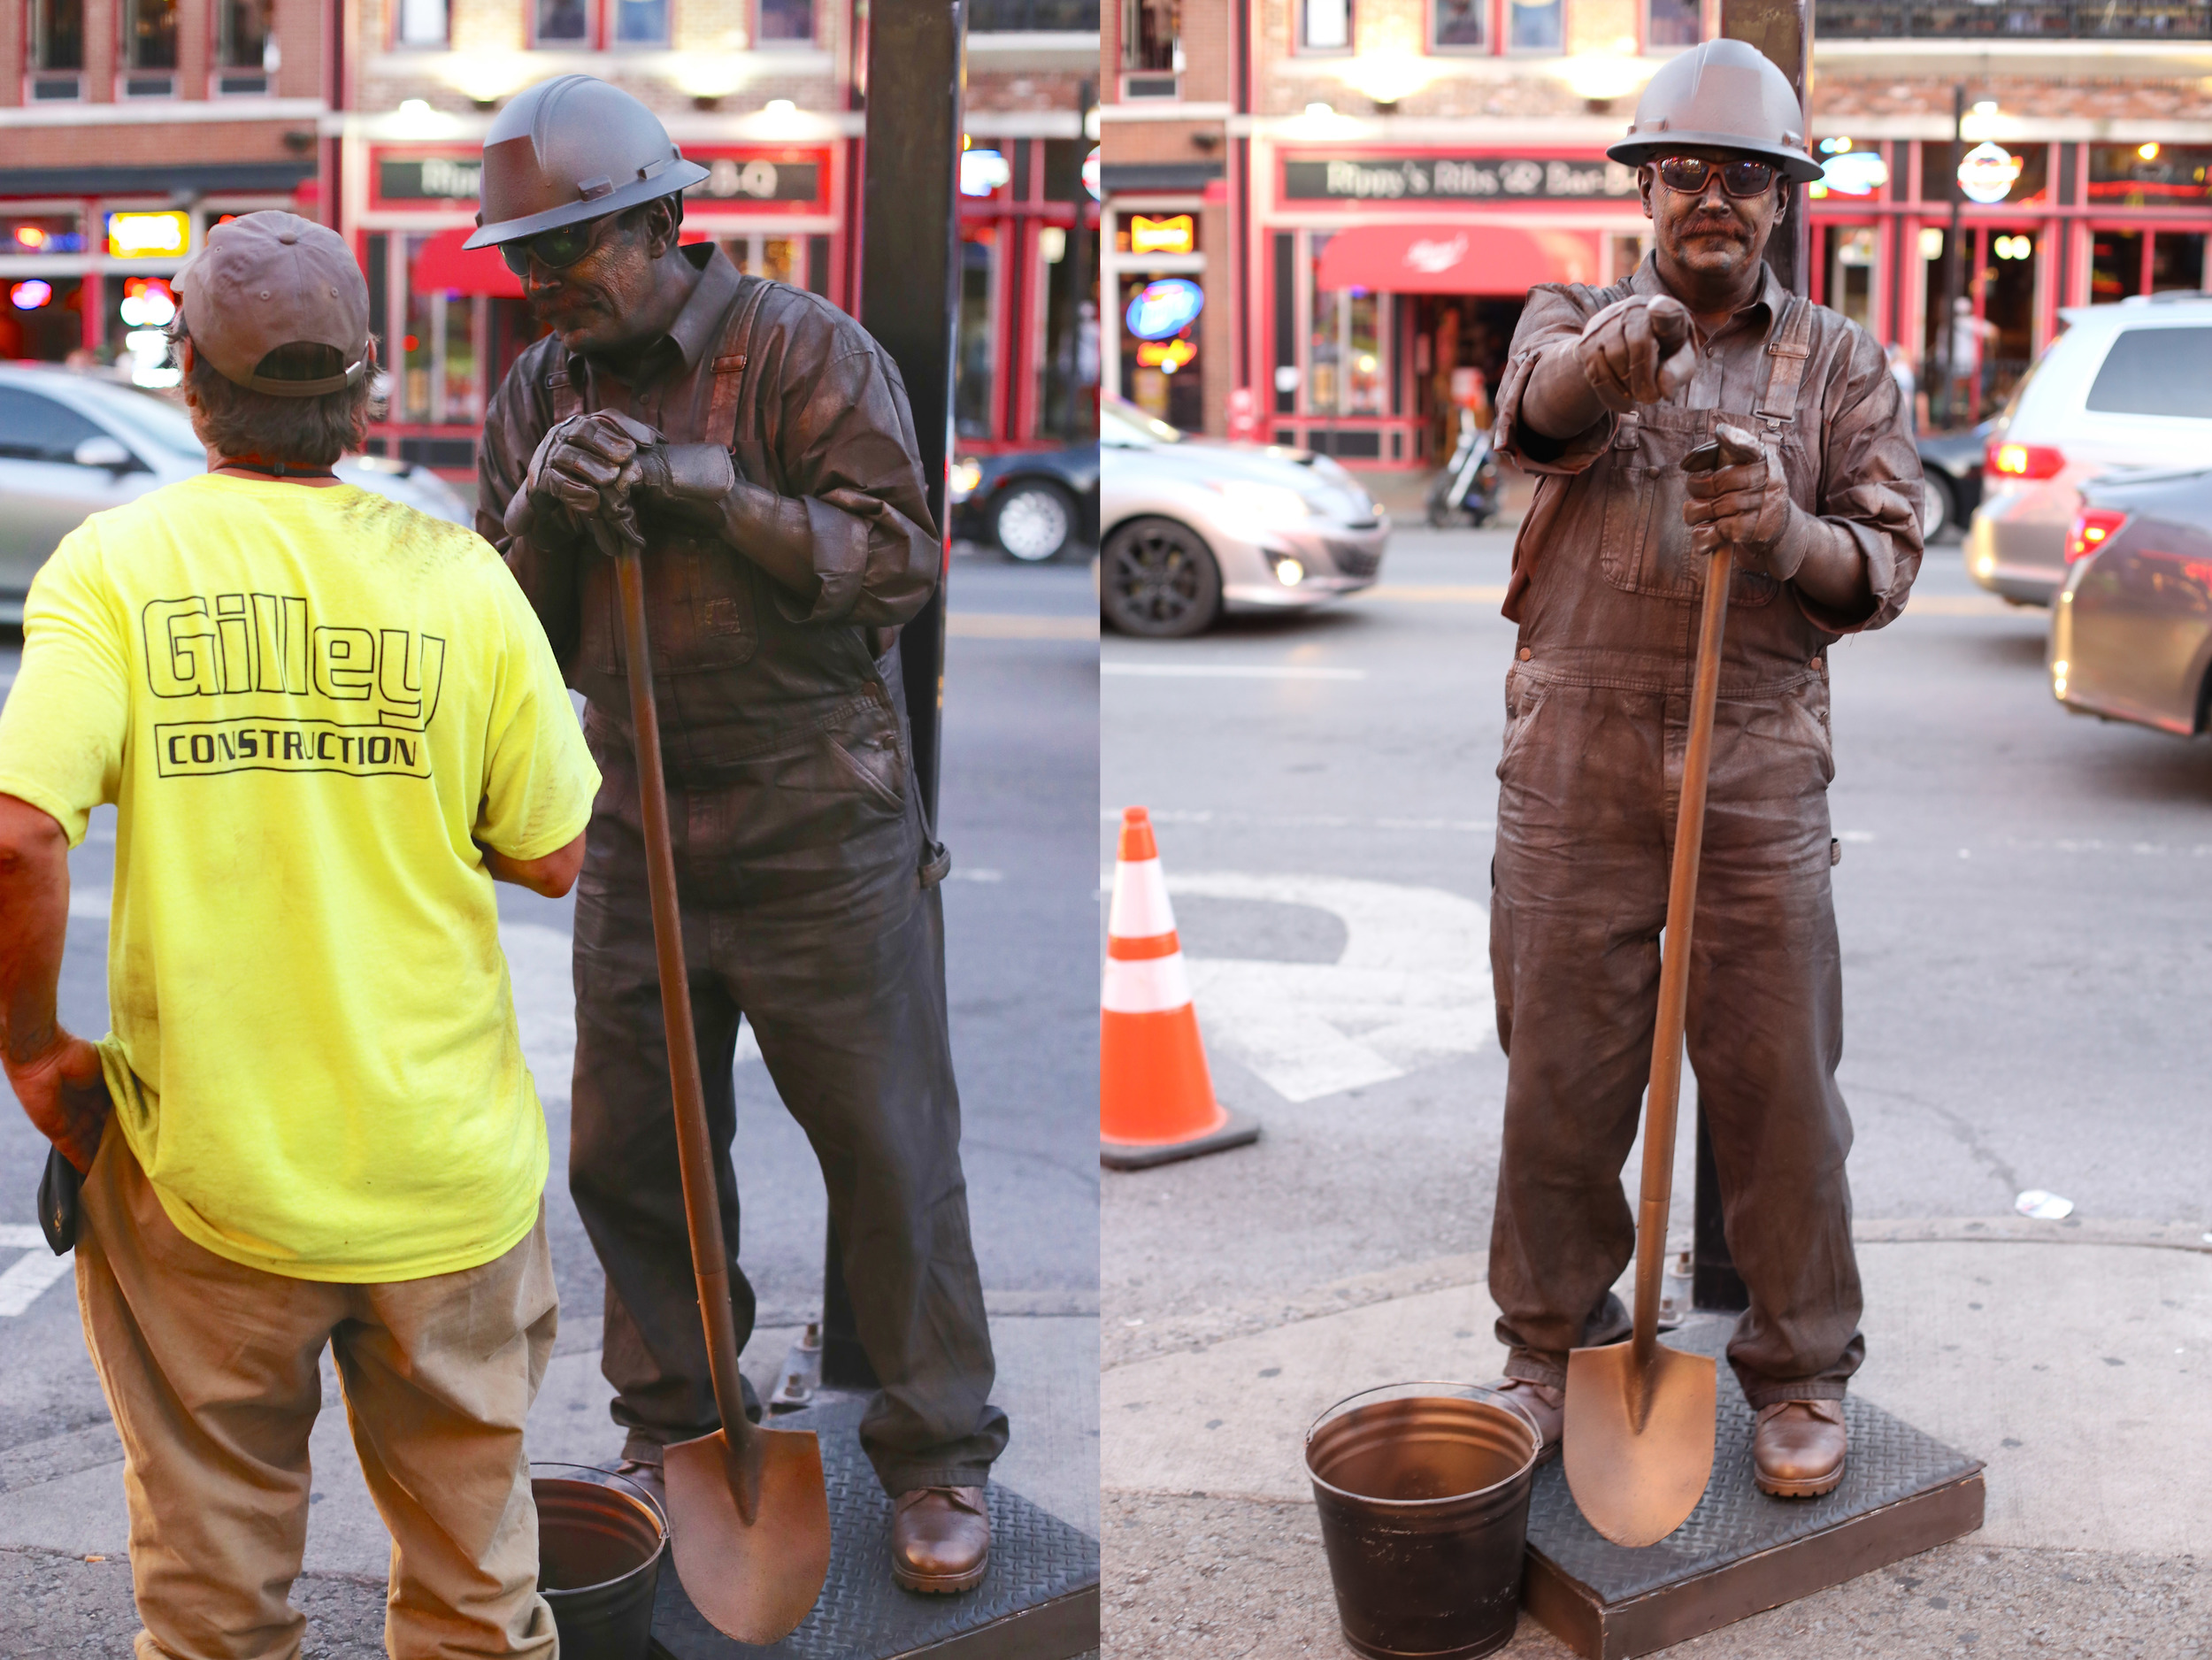 A construction worker statue